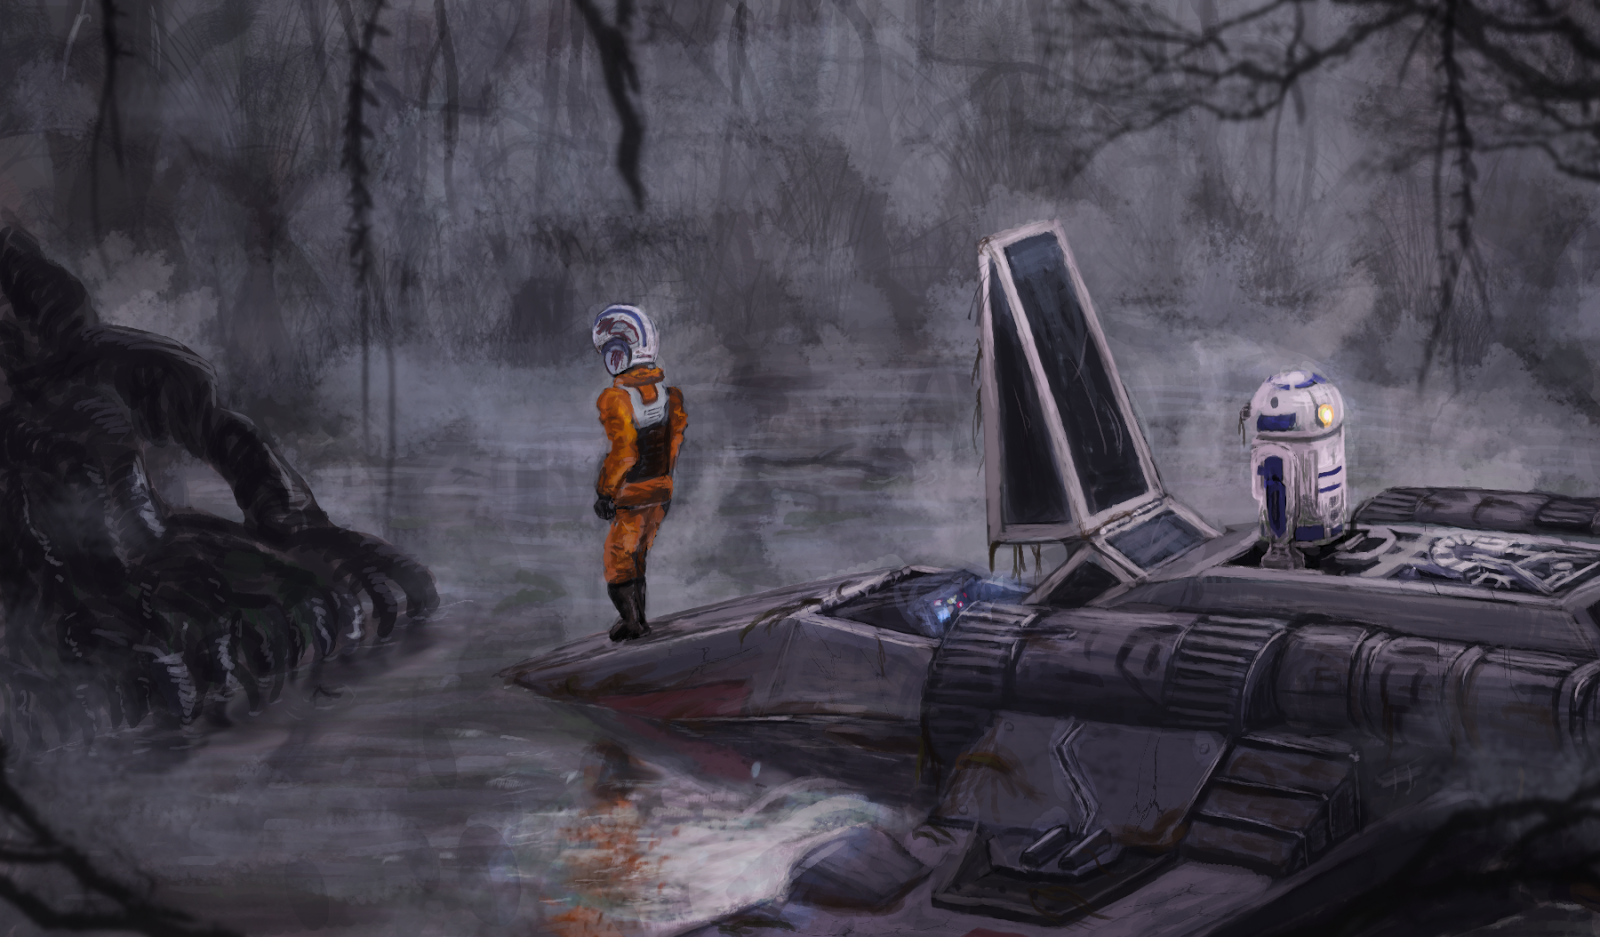 Star Wars Dagobah Crash landing digital painting